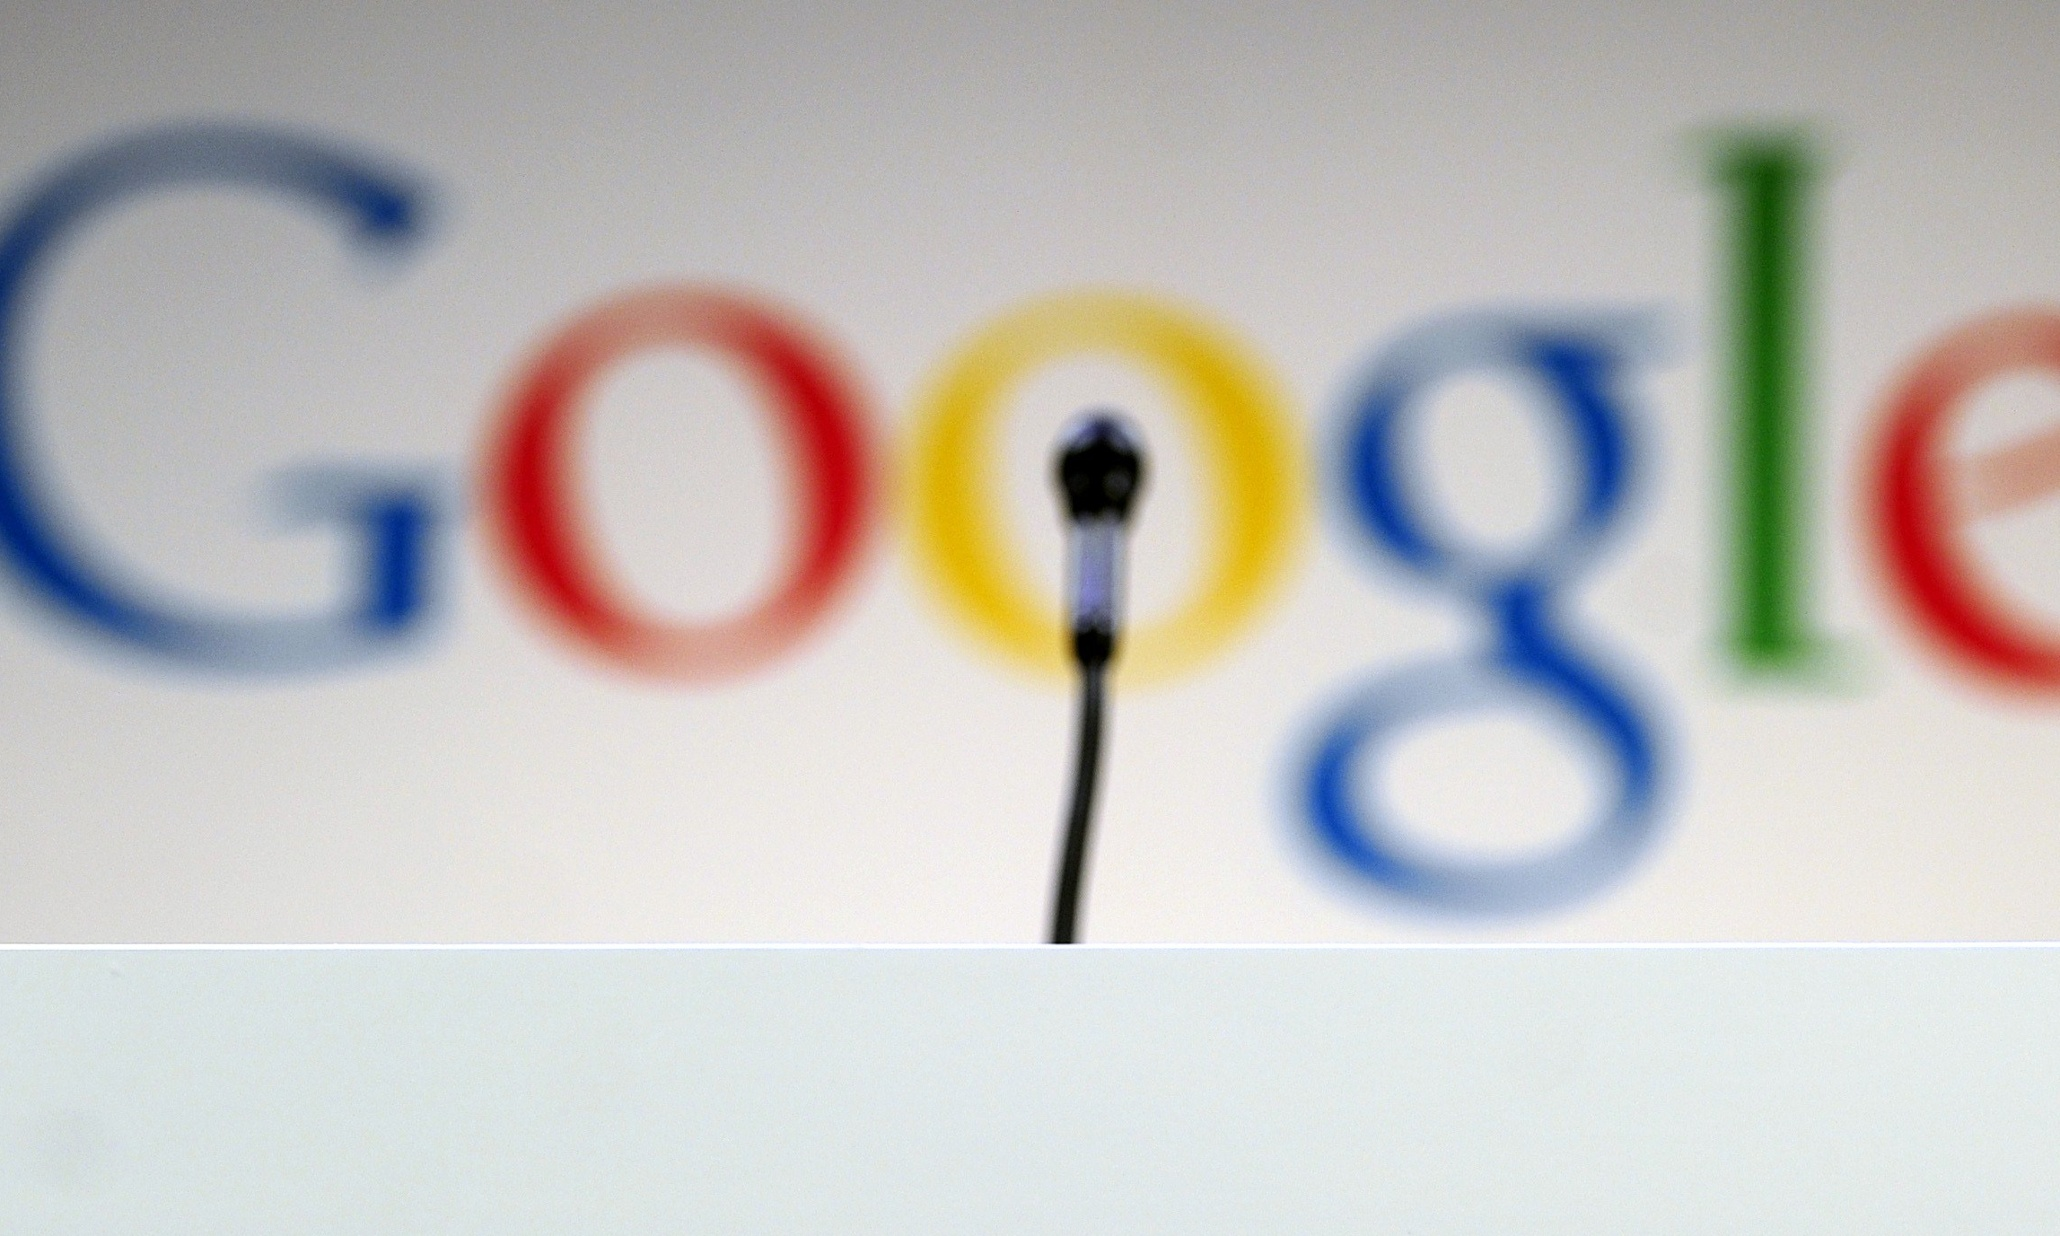 Google Eavesdropping Tool Installed on Computers Without Permission: OMG or I Don't Care?